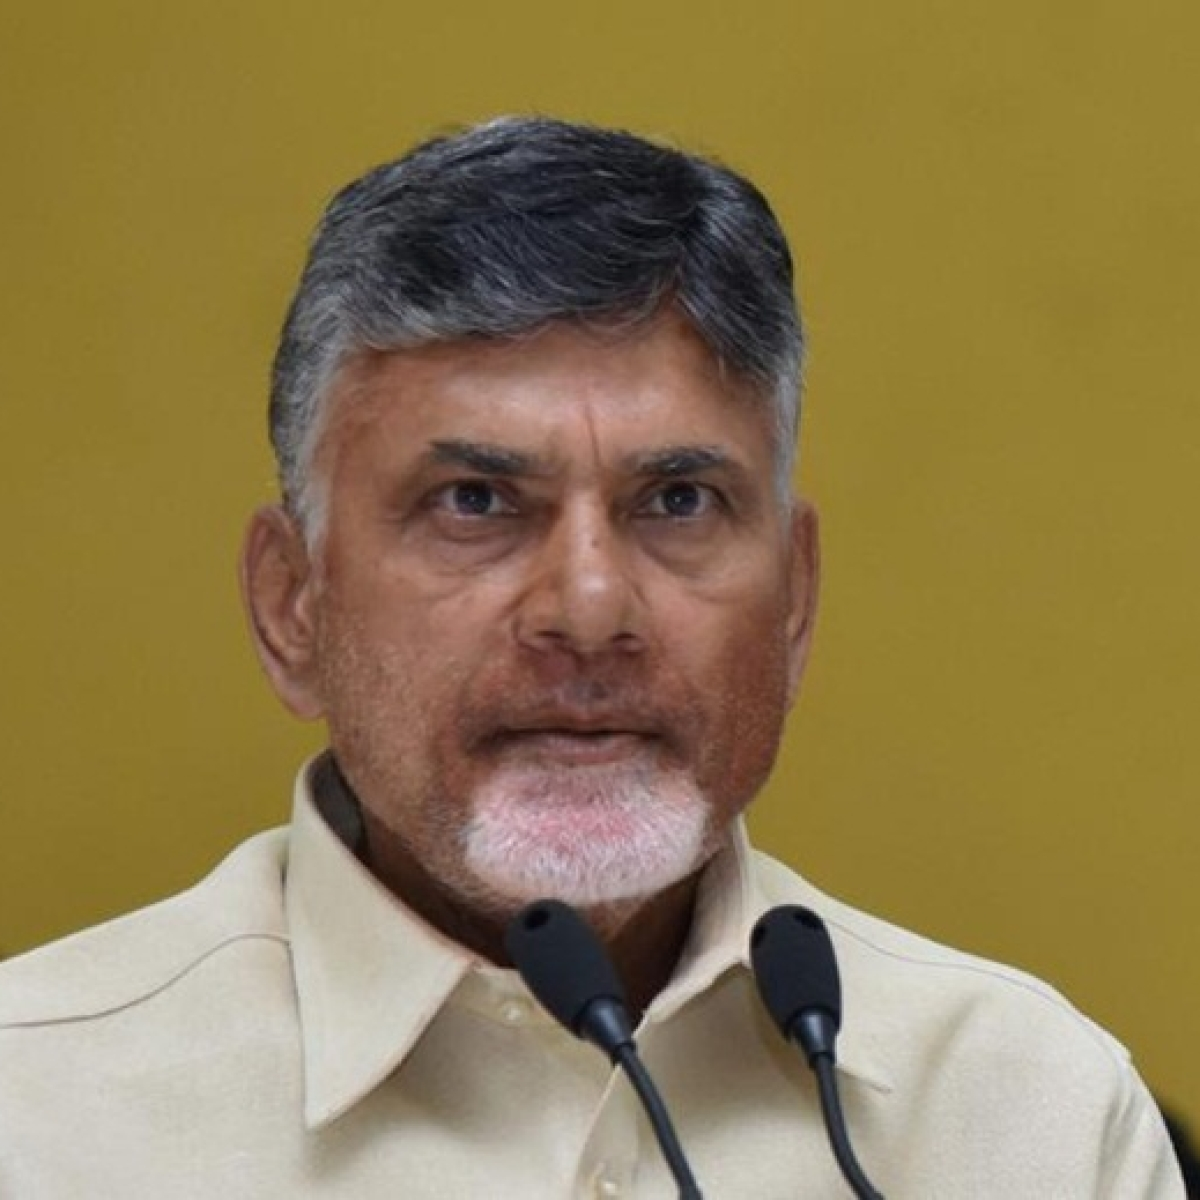 Andhra Pradesh: FIR lodged against Chandrababu Naidu for creating fear over N440K strain of COVID-19